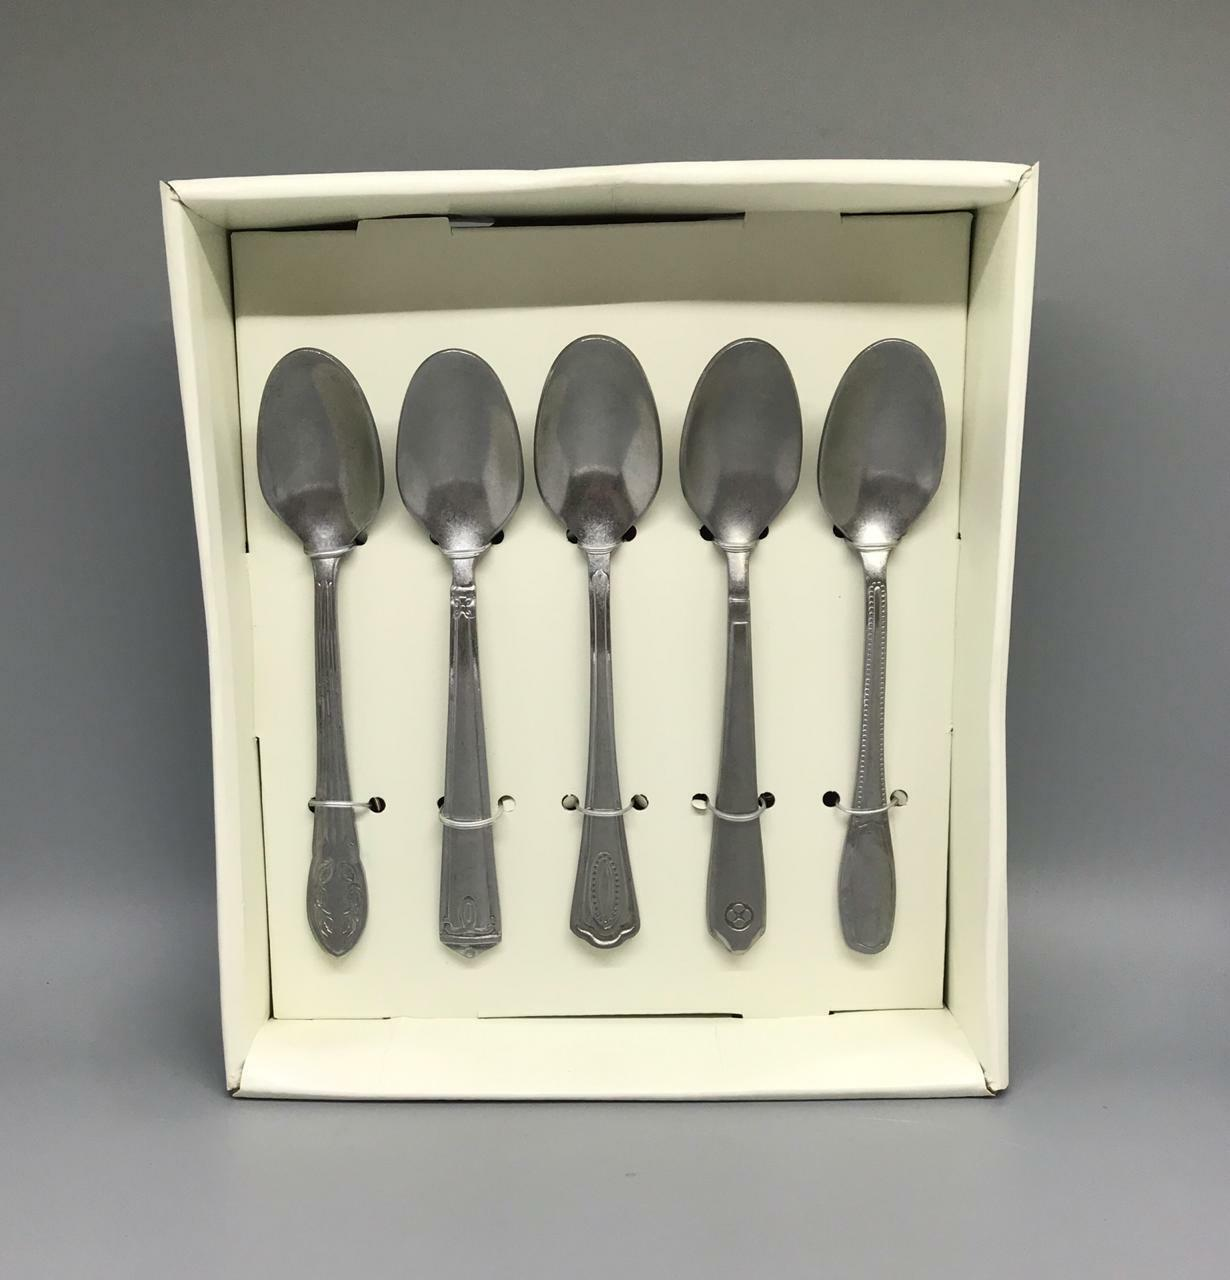 Pack of 10 Spoons Set Antique Finish Stainless